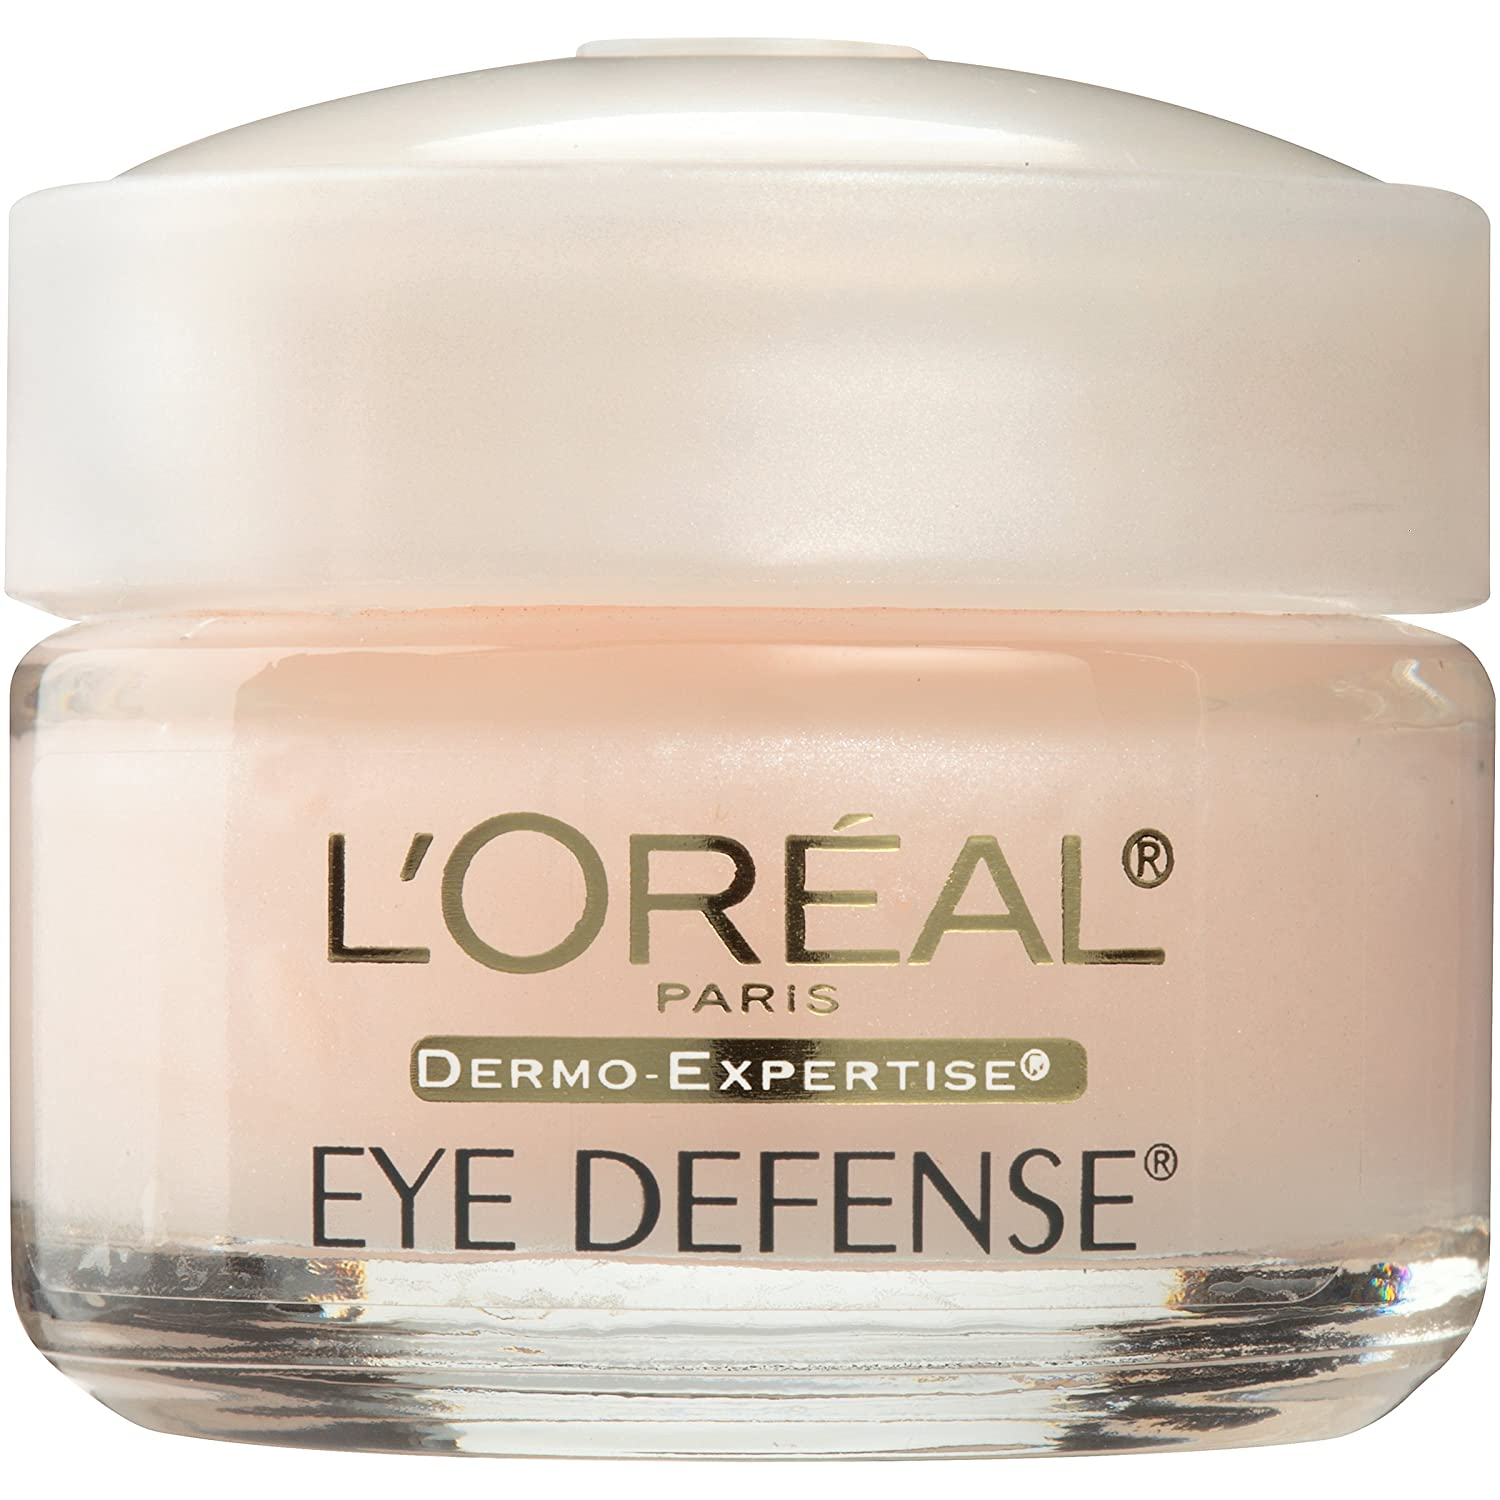 Eye Cream to Reduce Puffiness, Lines and Dark Circles, L'Oreal Paris Skincare Dermo-Expertise Eye Defense Eye Cream with Caffeine and Hyaluronic Acid For All Skin Types, 0.5 oz.: Beauty